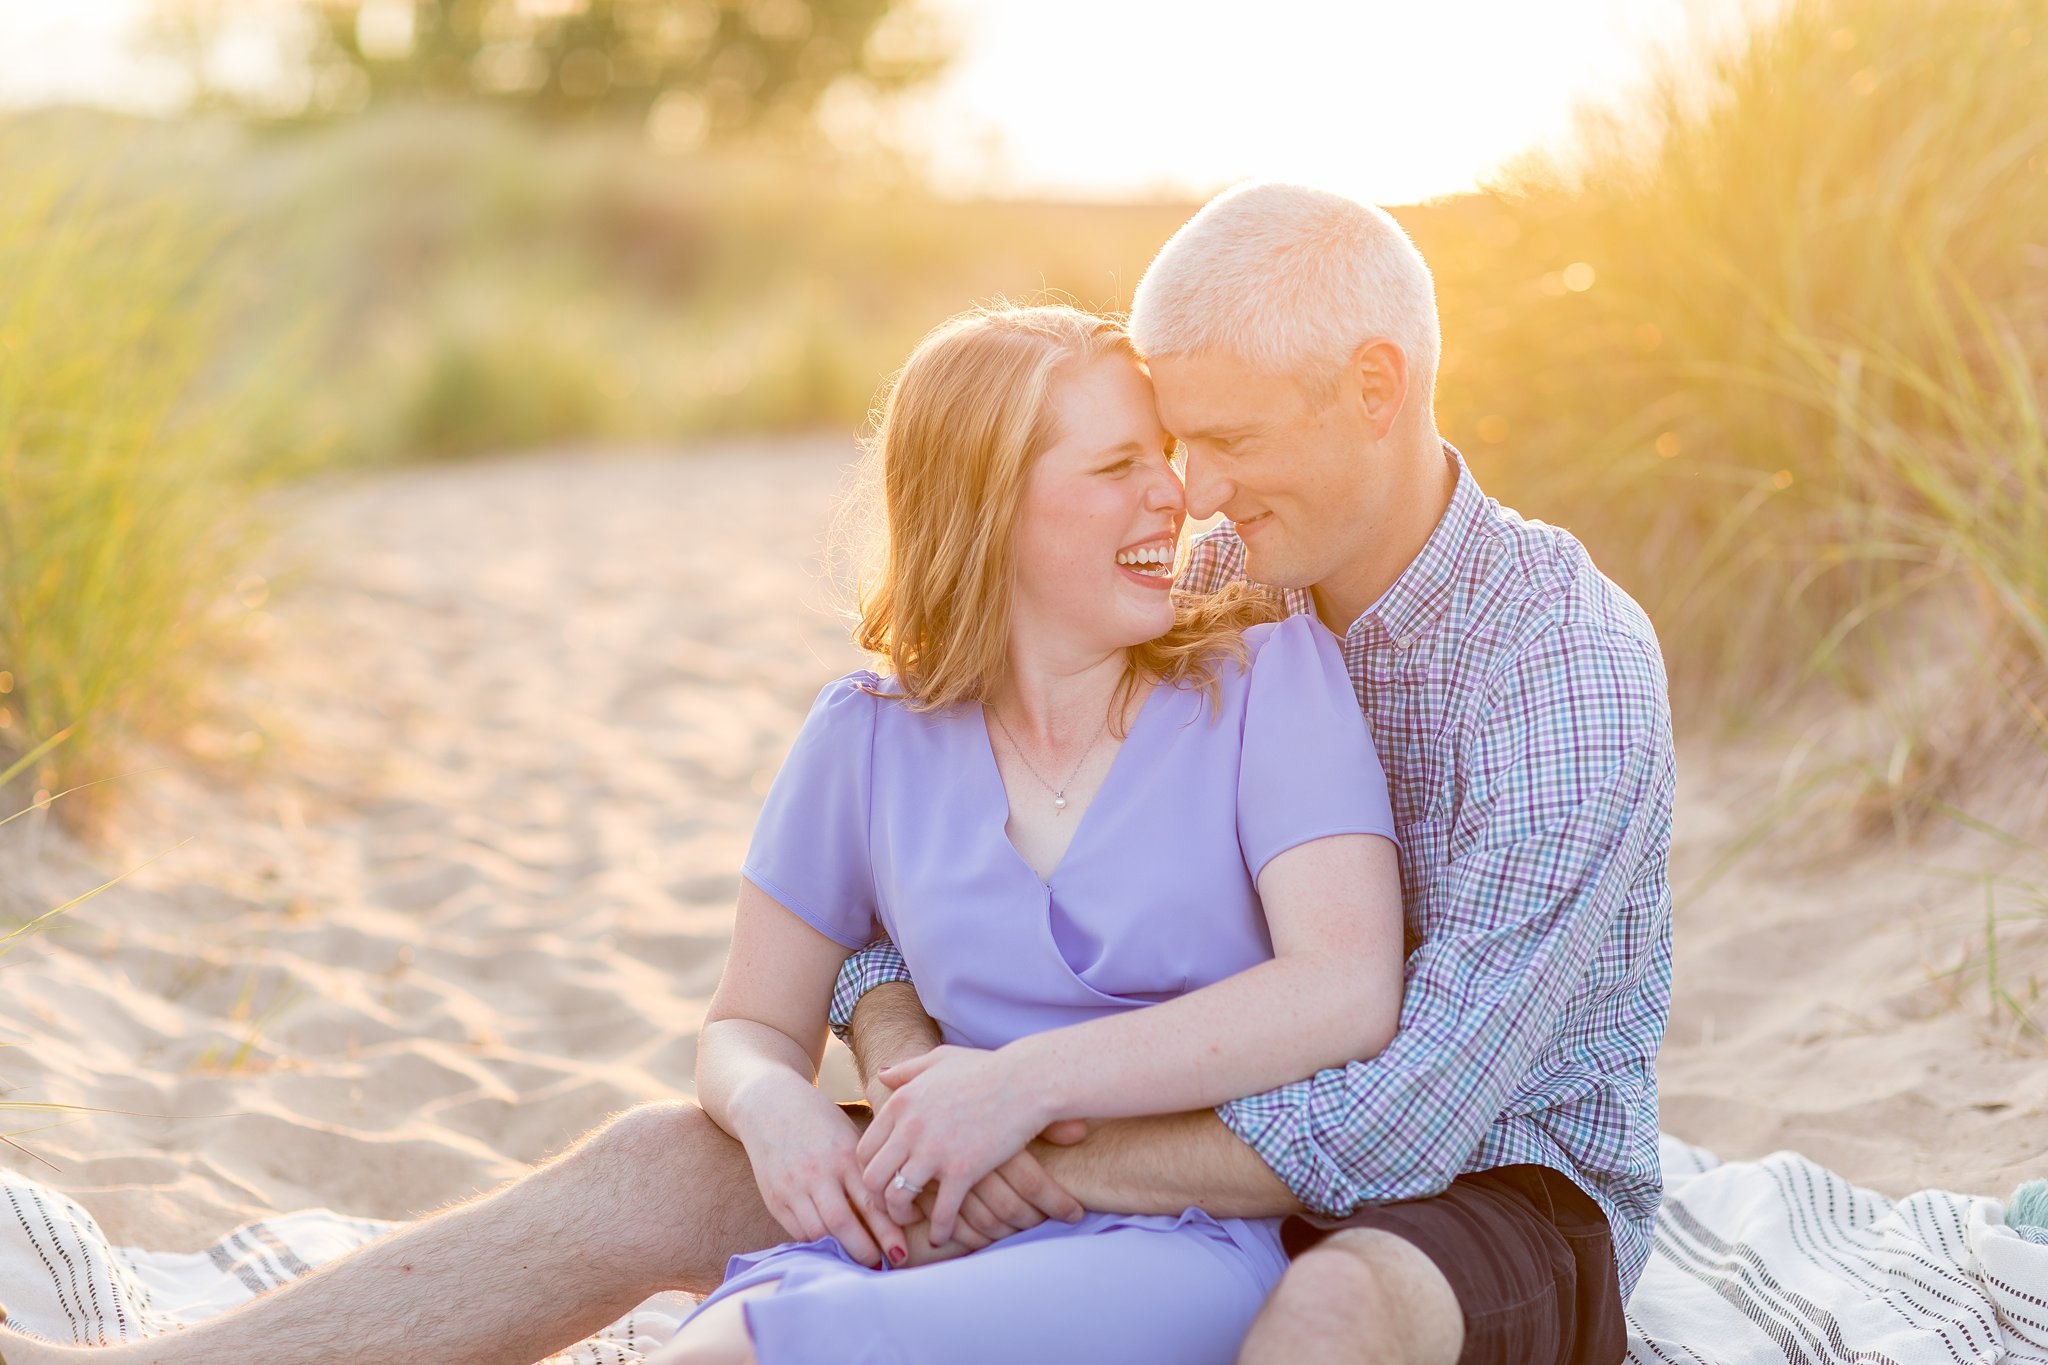 Megan + Phil | Engagement | New Buffalo, MI | Toni Jay Photography